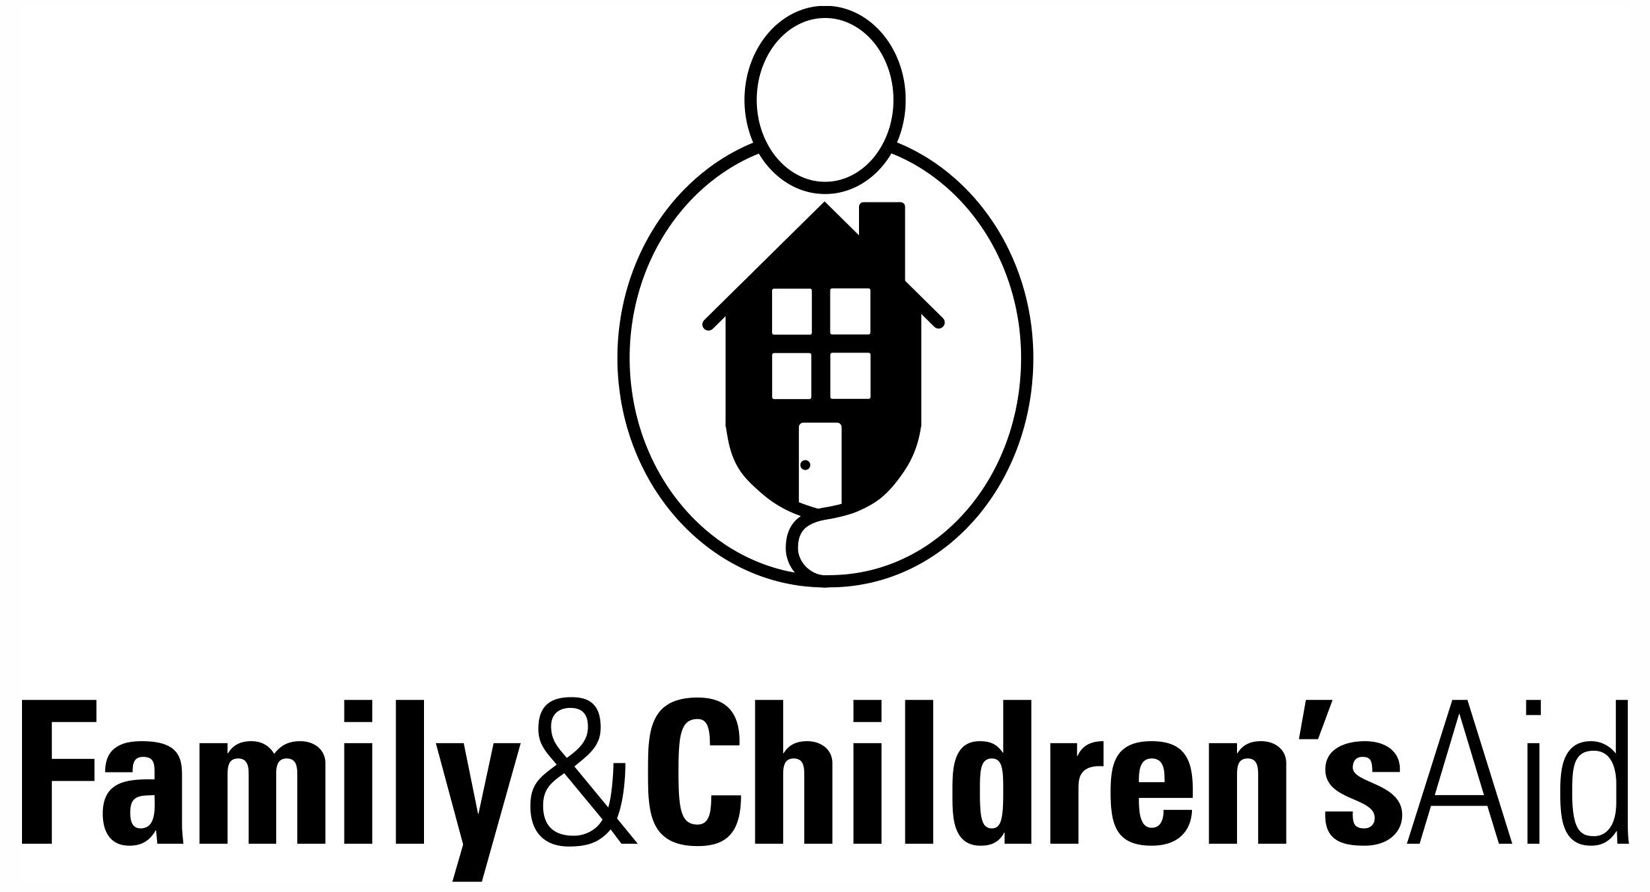 Family & Children's Aid